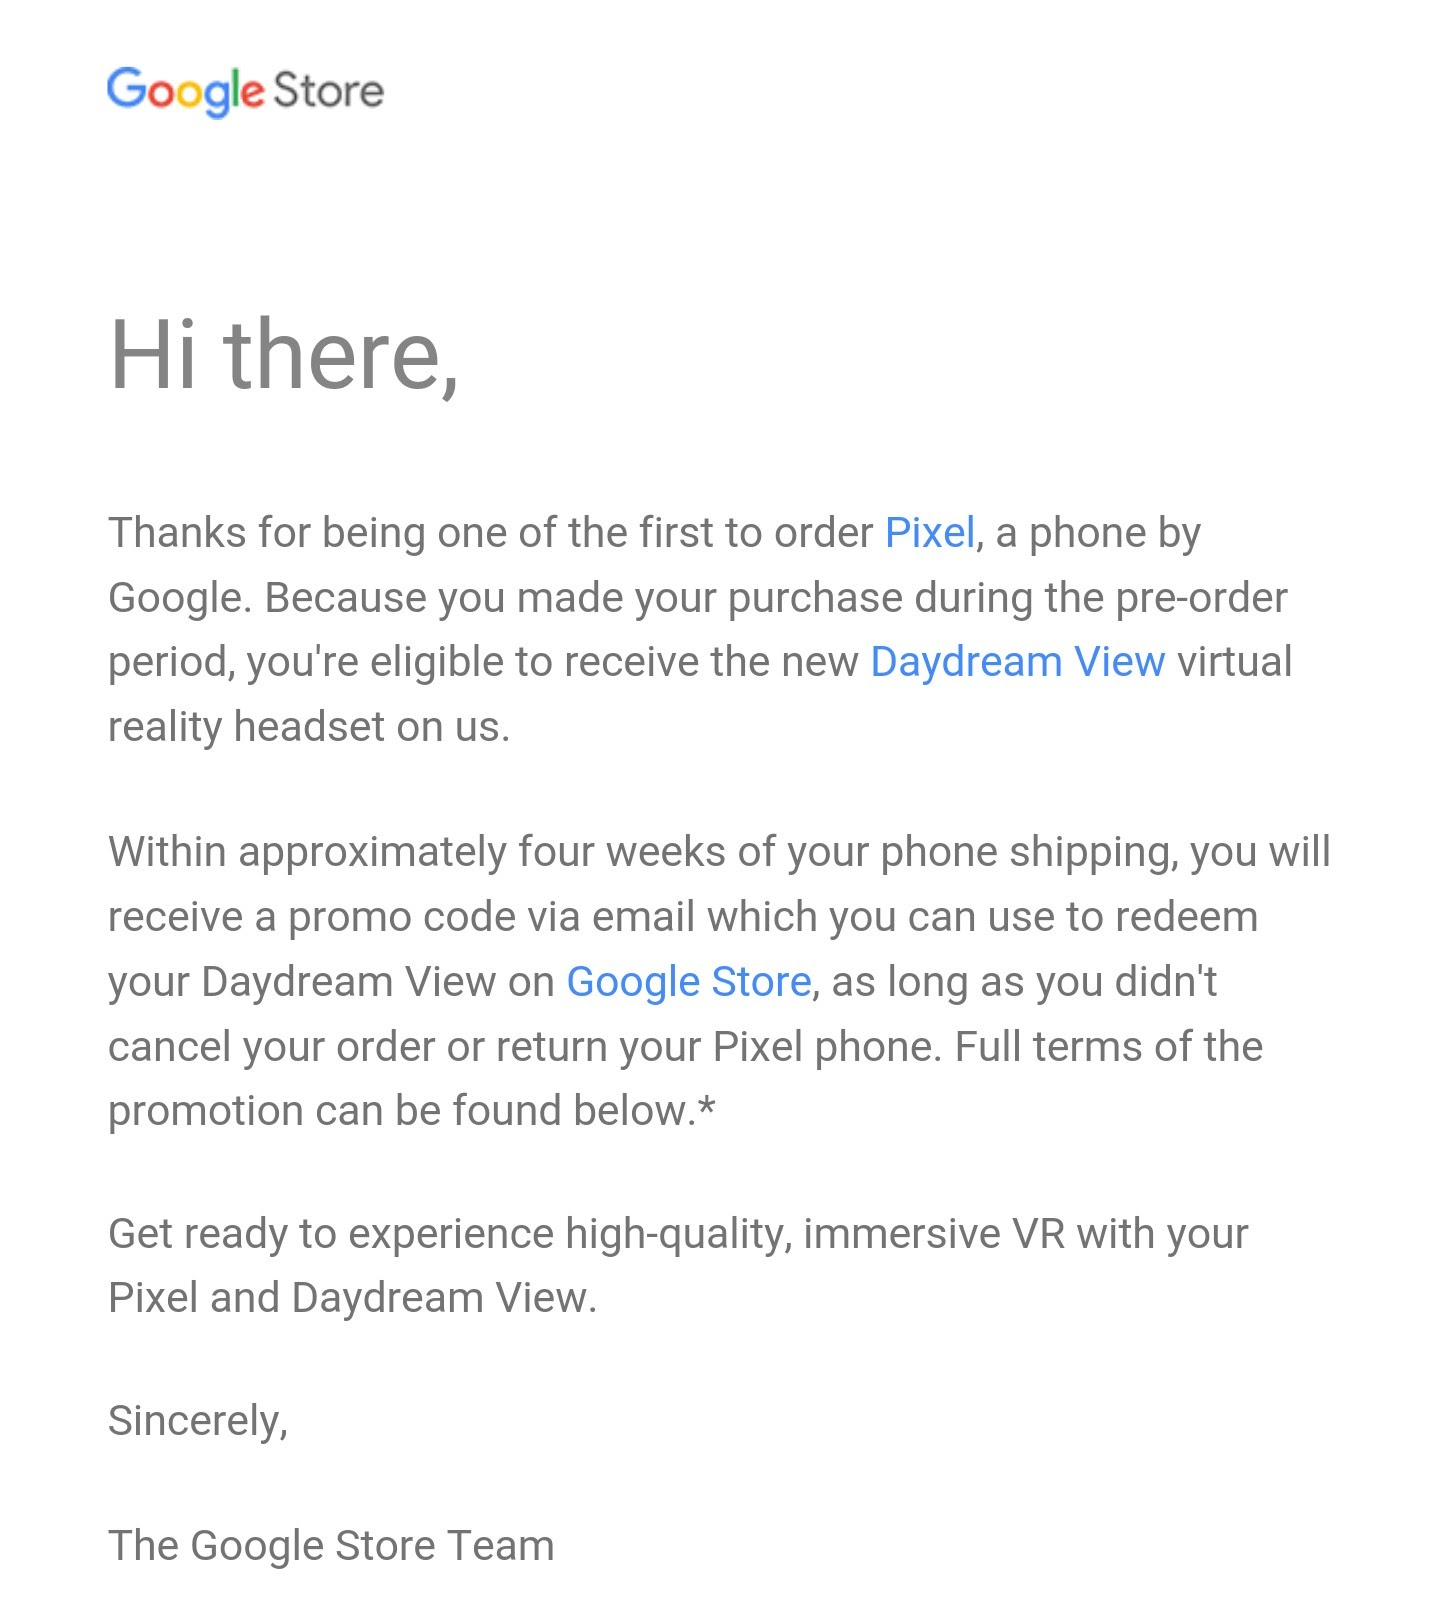 Suggestions and tips for (pre)ordering your Pixel phone